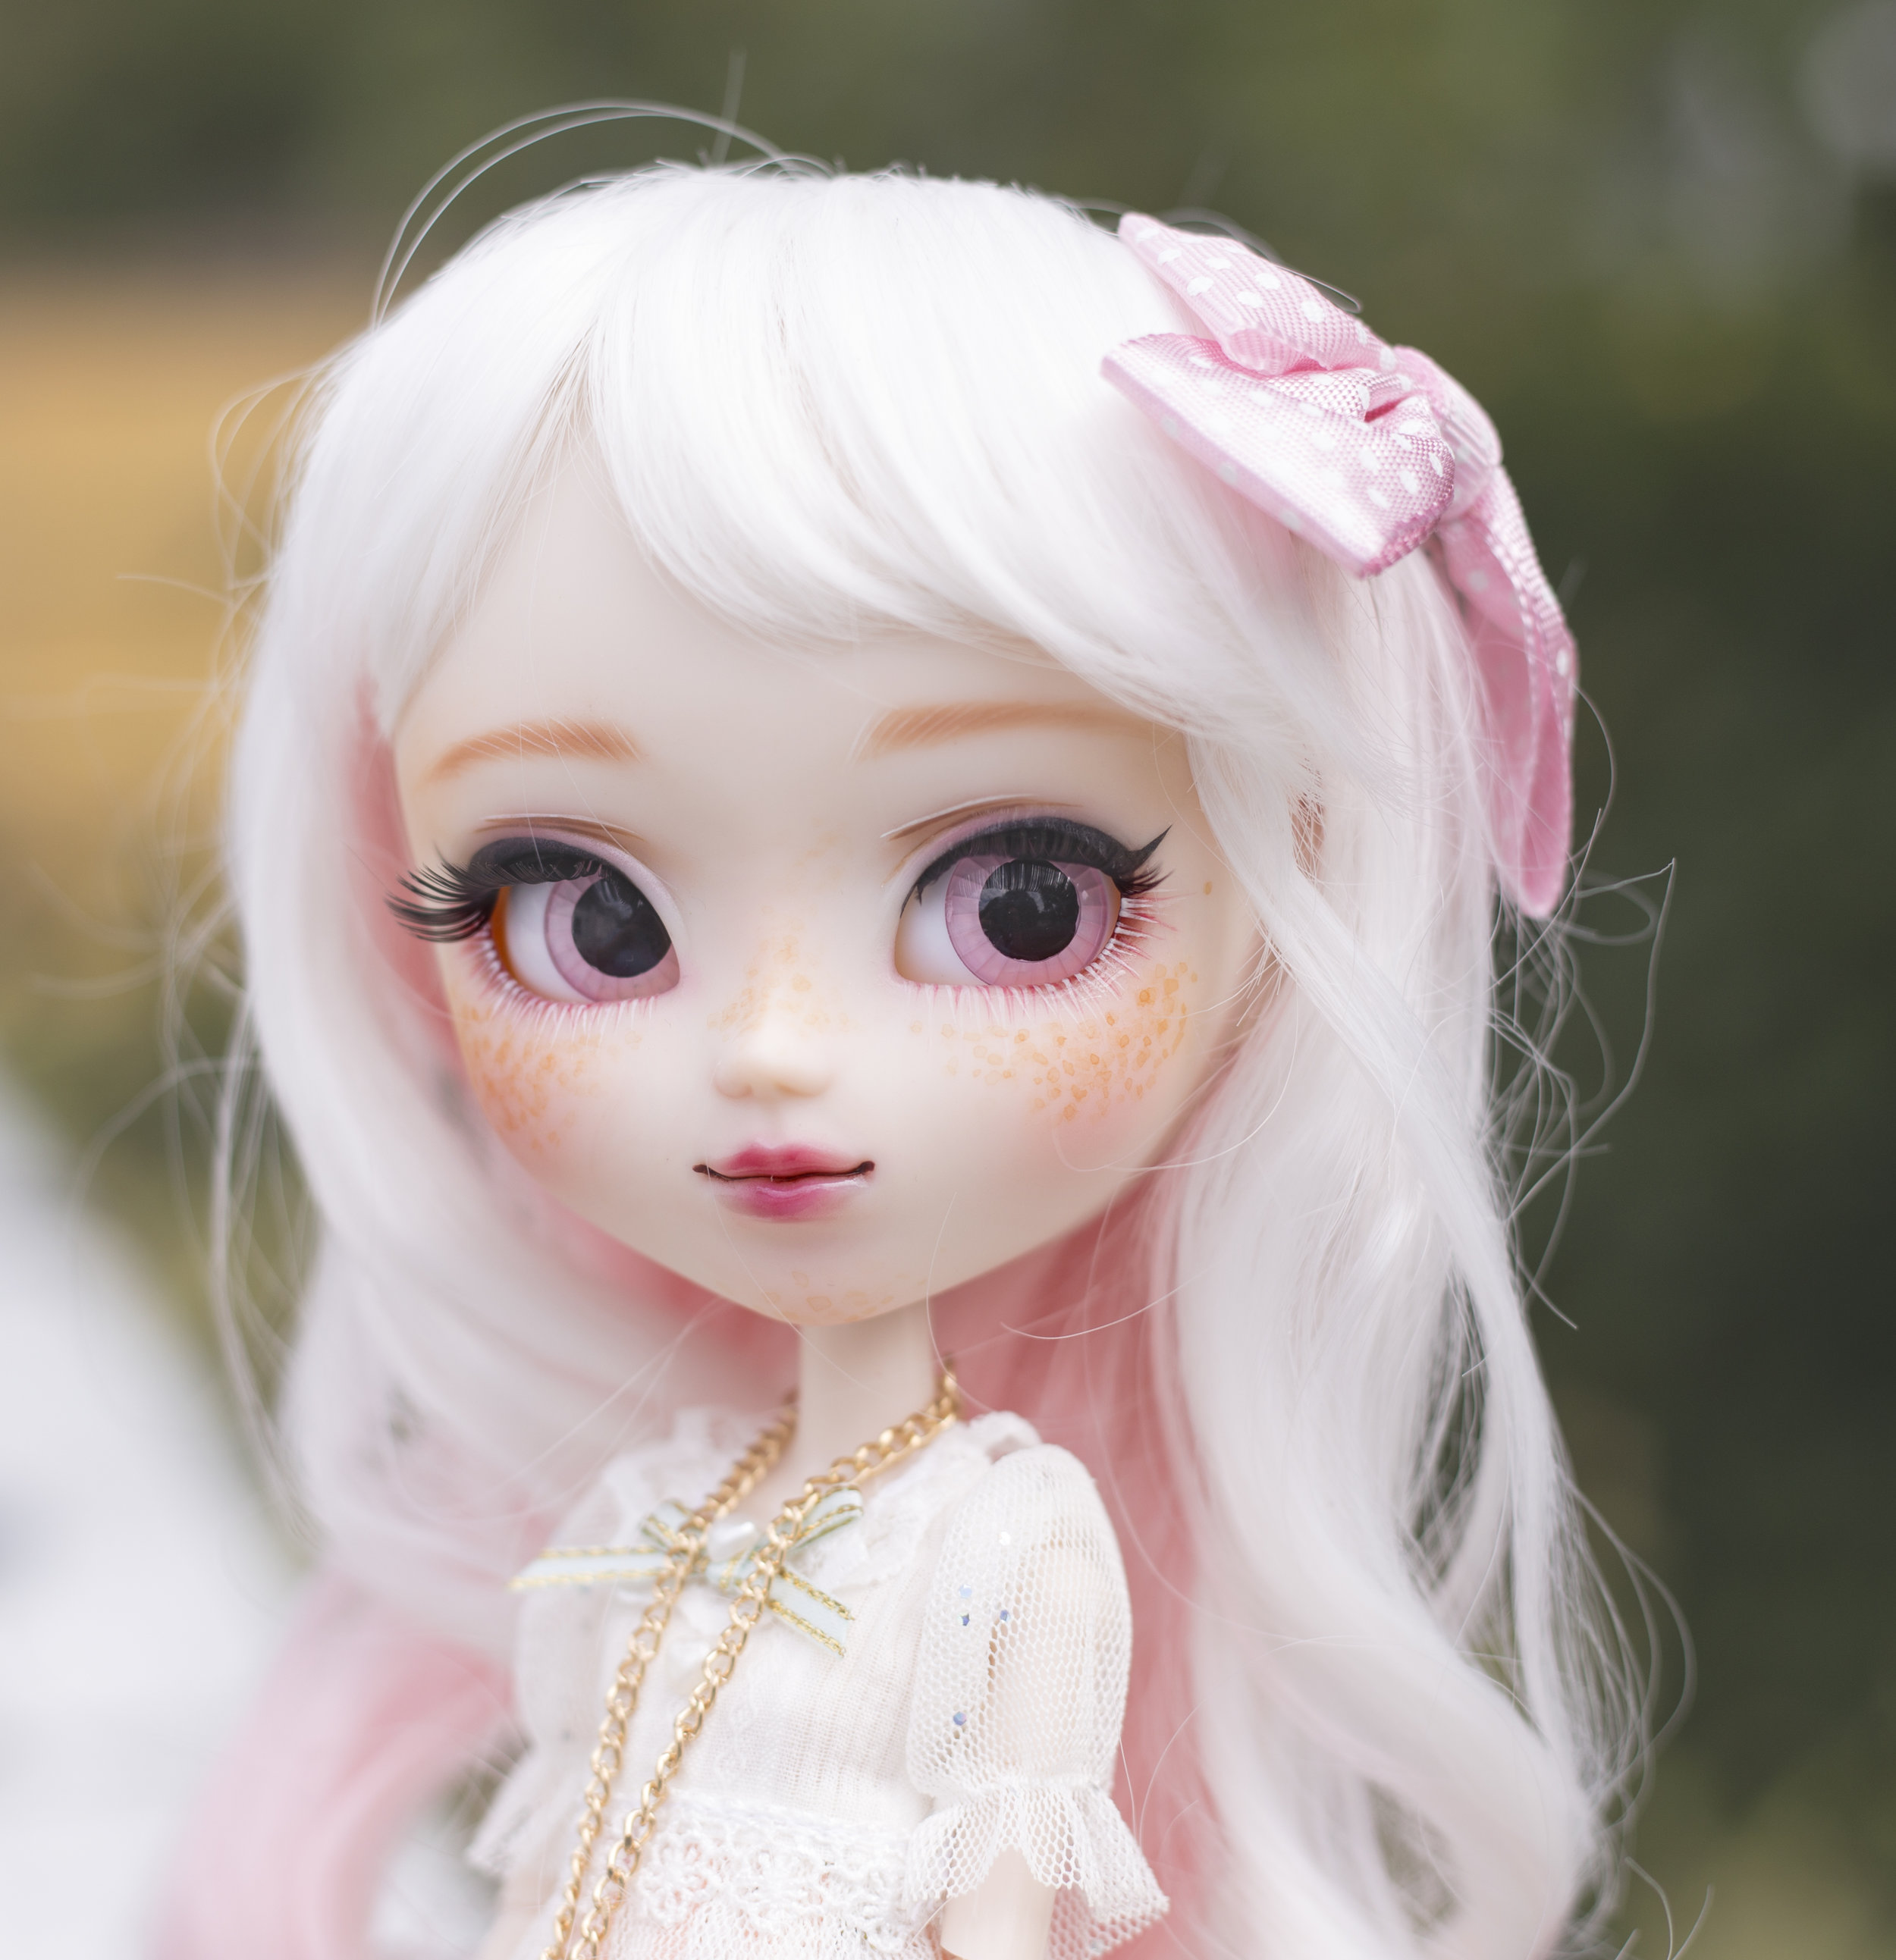 Strawberries and Cream by Yummy Sweets Dolls